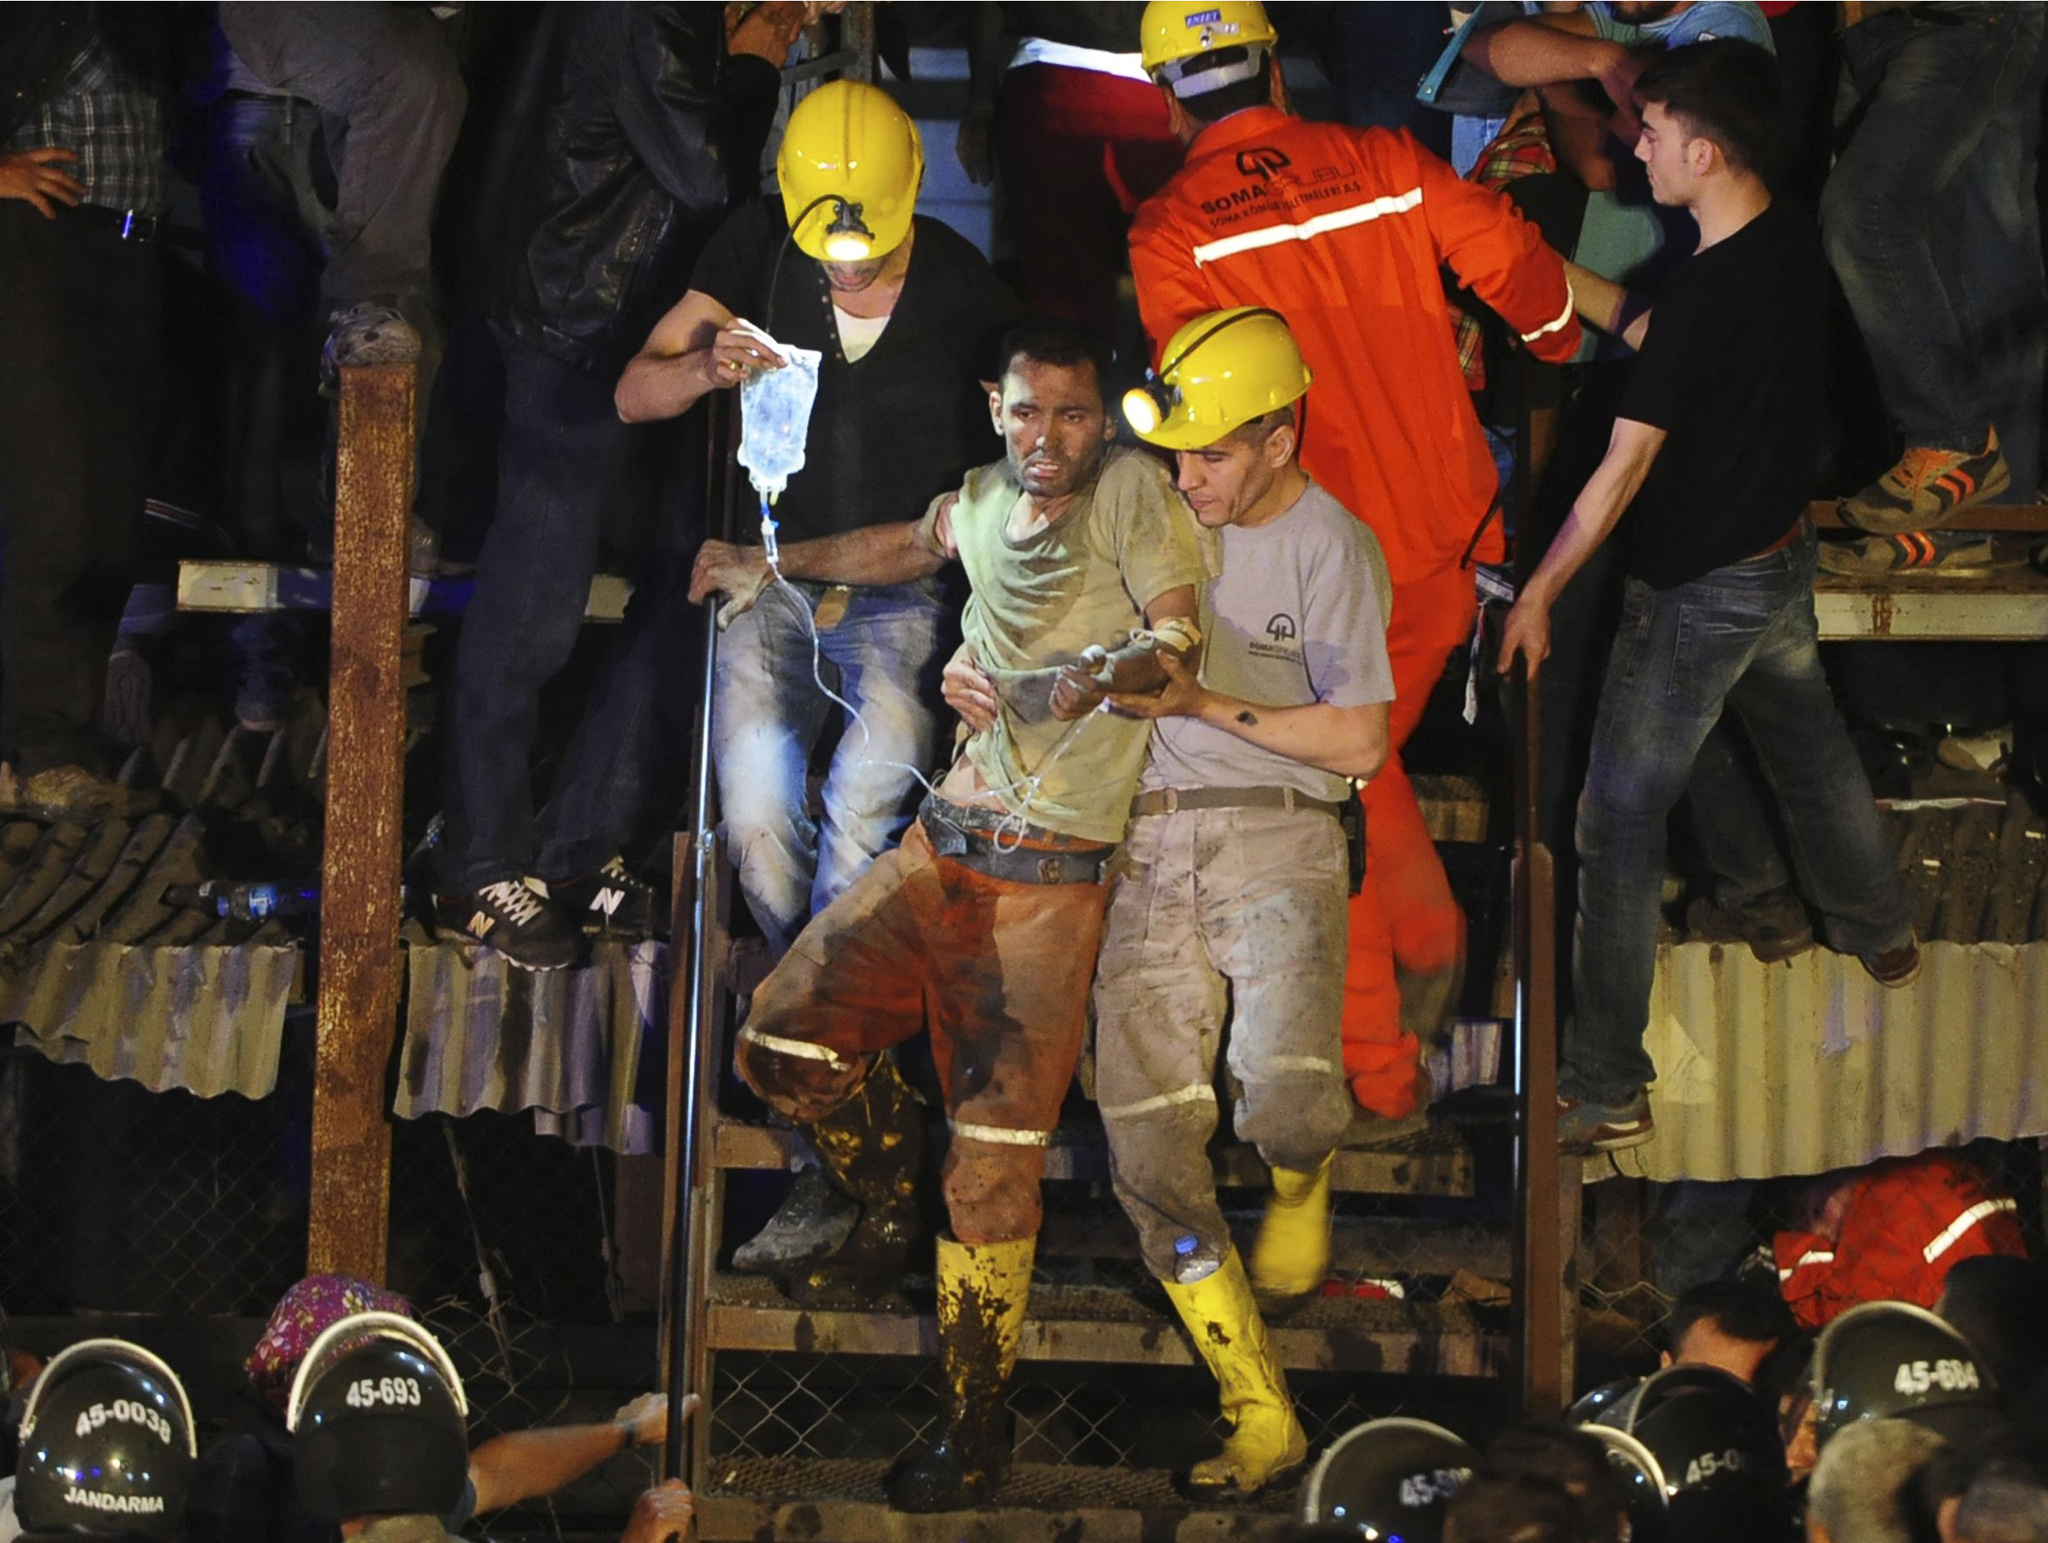 An injured miner is carried to an ambulance after being rescued from a coal mine he was trapped in Soma...An injured miner is carried to an ambulance after being rescued from a coal mine he was trapped in, in Soma, a district in Turkey's western province of Manisa, late May 13, 2014. Rescuers pulled more dead and injured from the coal mine in western Turkey on Wednesday more than 12 hours after an explosion, bringing the death toll to 201 in the nation's worst mining disaster for decades. Hundreds more were still believed to be trapped in the mine in Soma, around 120 km (75 miles) northeast of the Aegean coastal city of Izmir. The explosion, which triggered a fire, occurred shortly after 3 pm (1200 GMT) on Tuesday. REUTERS/Emre Tazegul